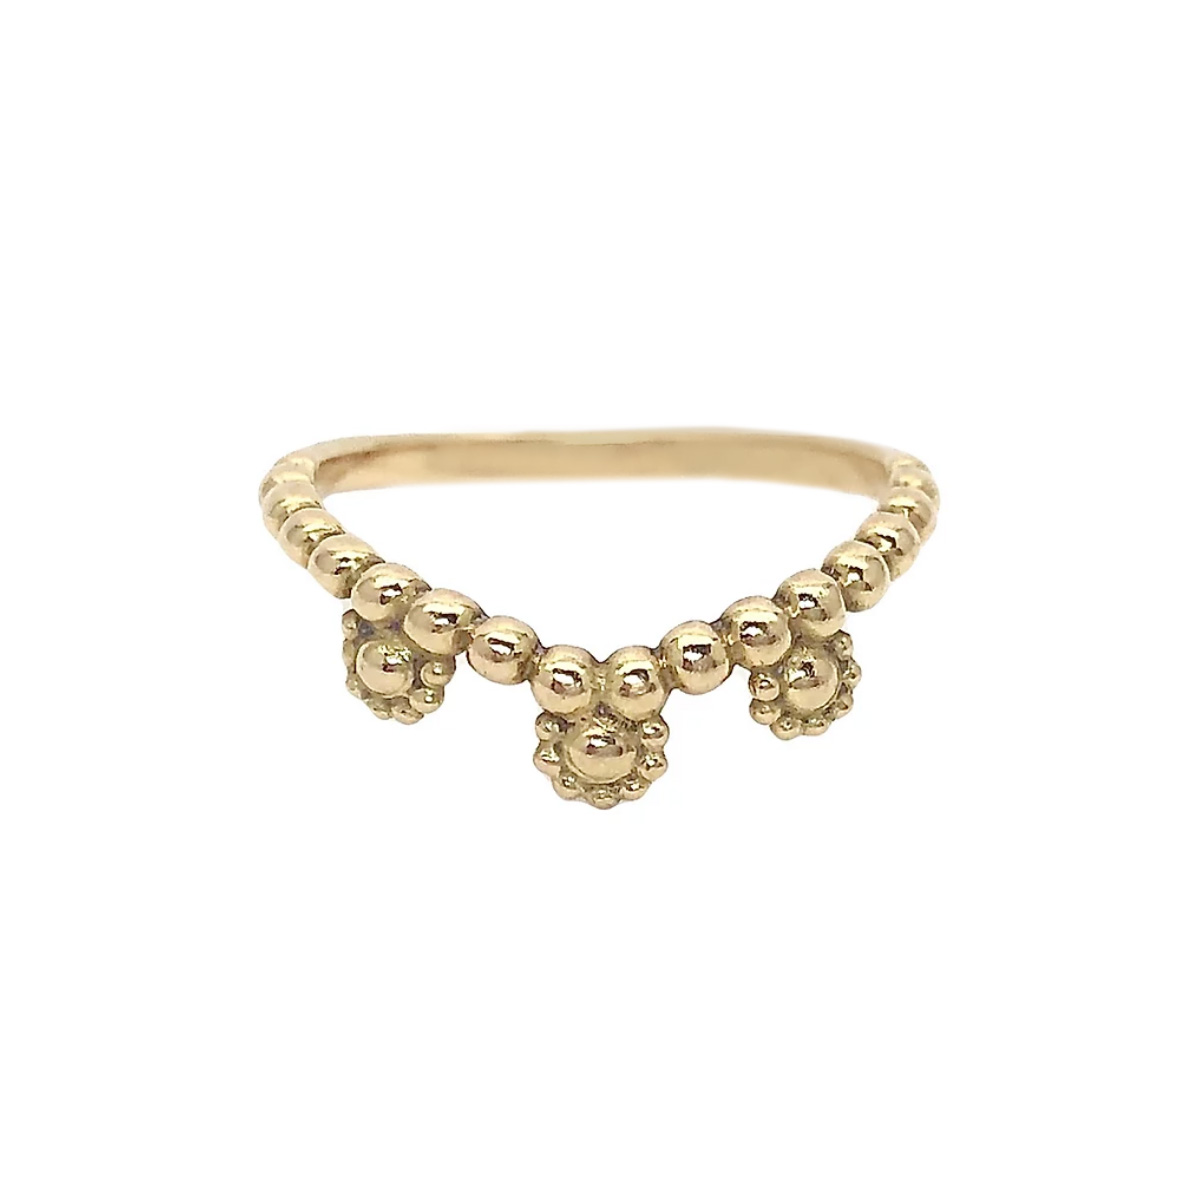 Rachel Beck's Gold Nirvana Ring